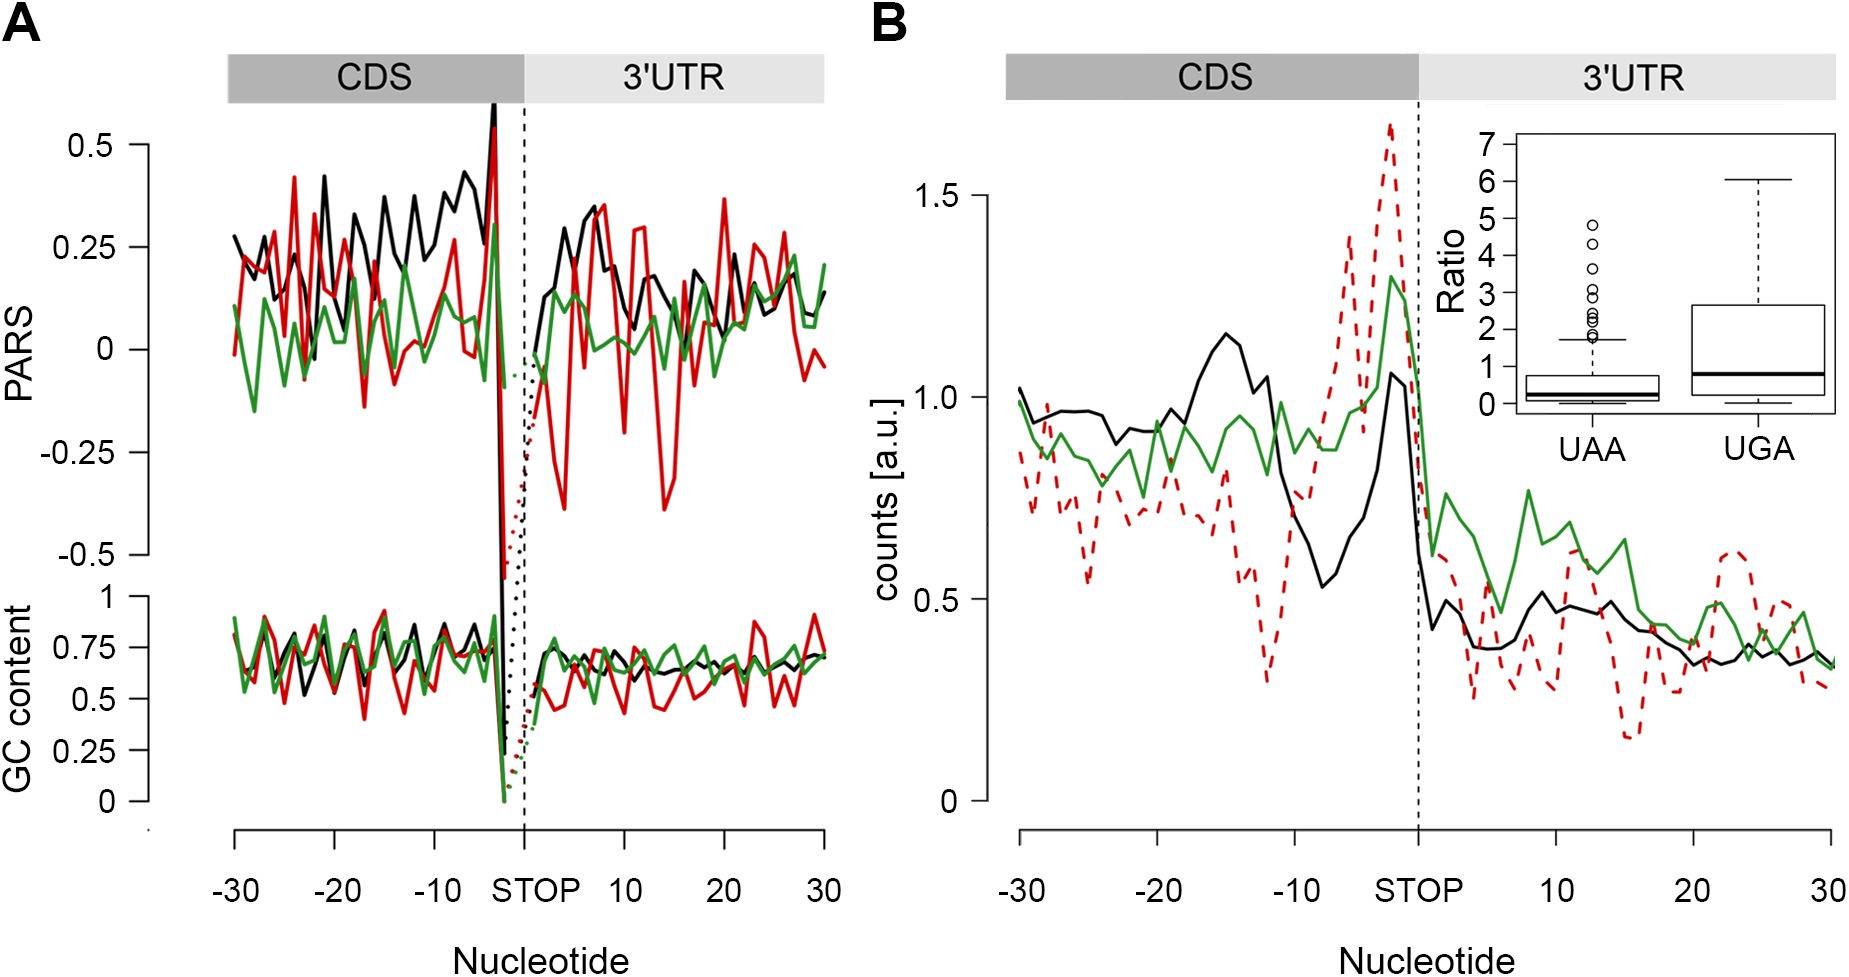 The stop codon of operon genes is more structured than non-operon genes.